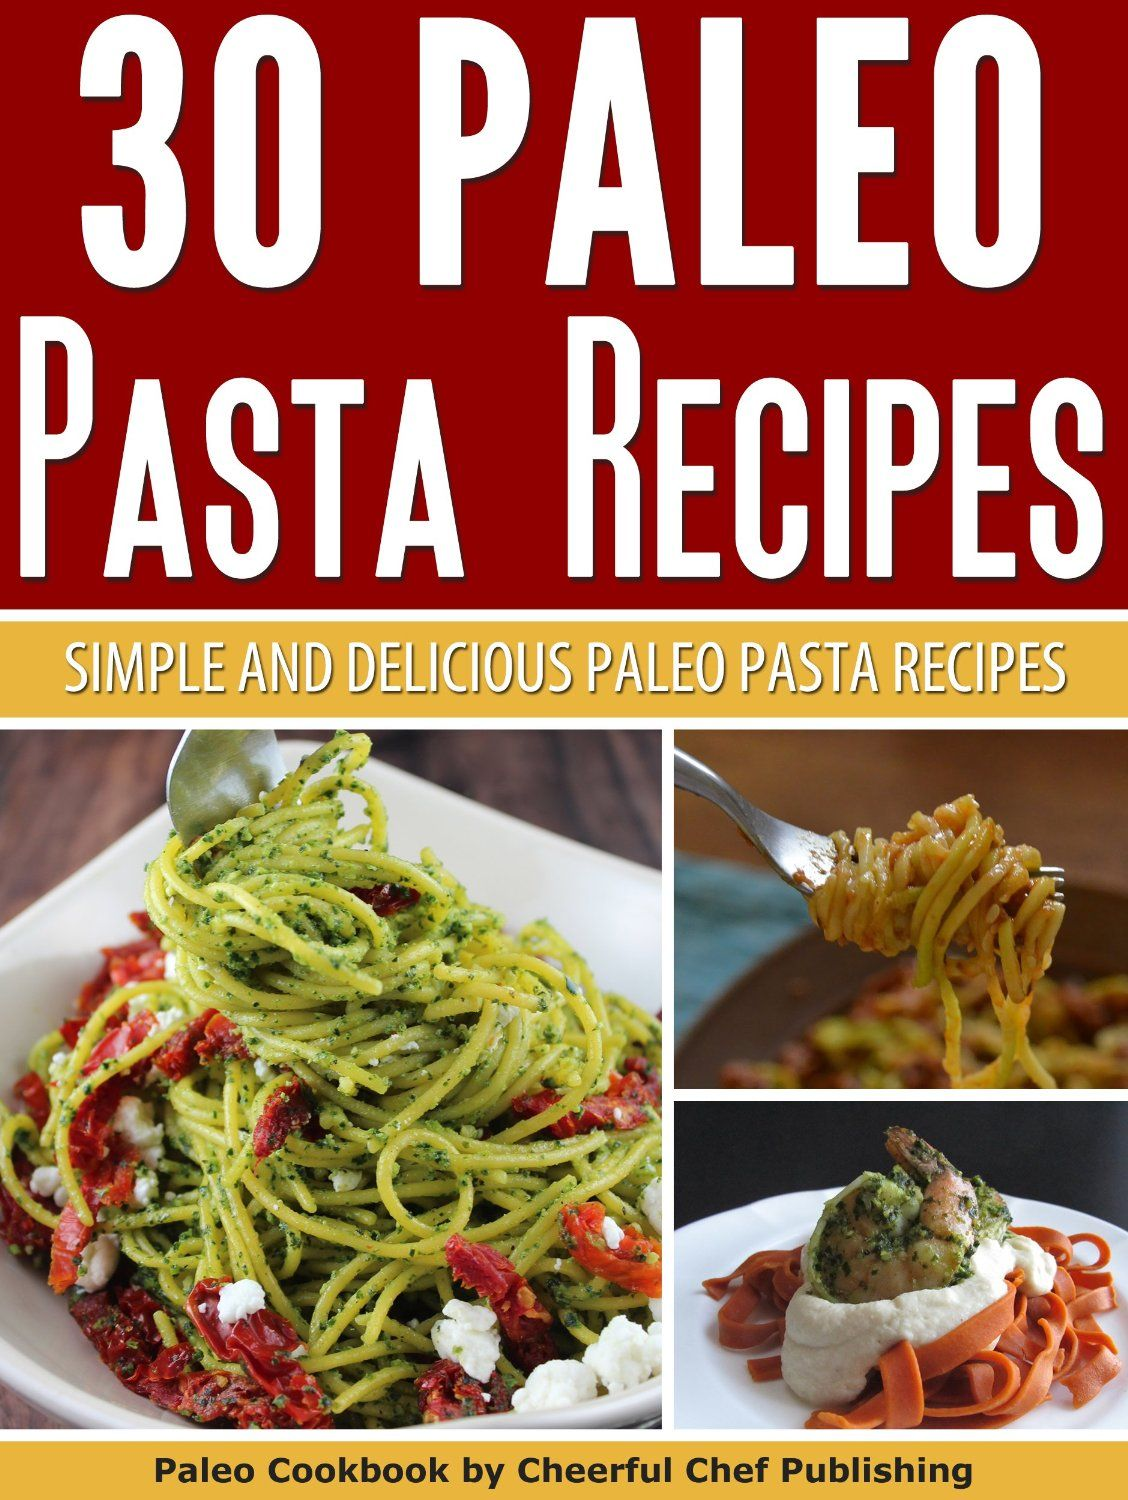 Httpspaleo diet menuspot paleodiet free today 30 httpspaleo diet menuspot paleodiet free today 30 paleo pasta recipes simple and delicious paleo pasta recipes paleo pasta recipes paleo forumfinder Choice Image